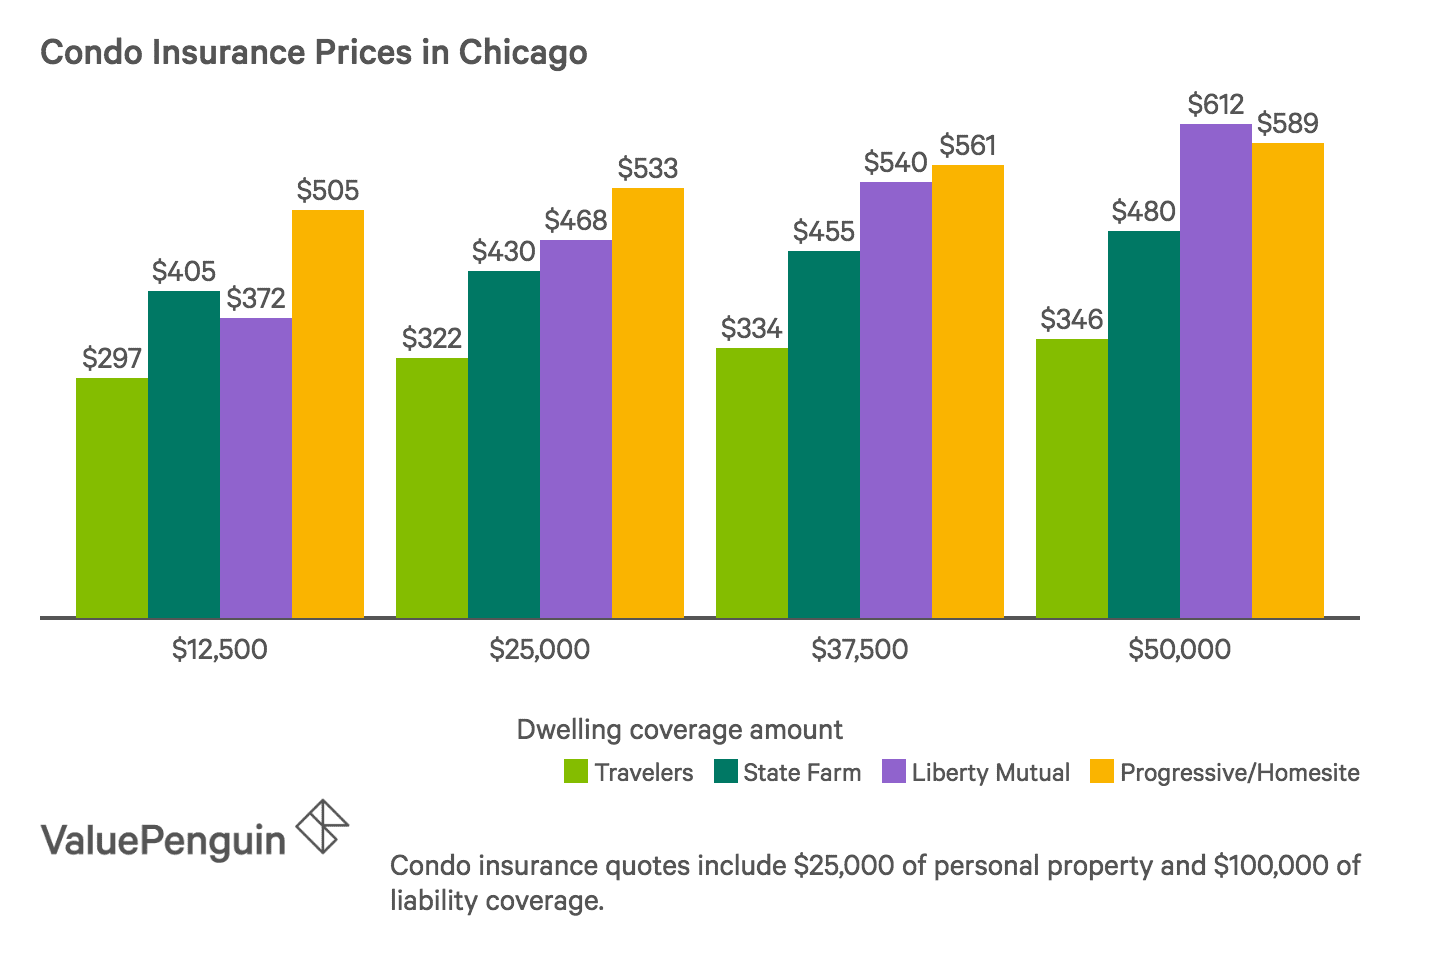 How Much Condo Insurance Costs in Chicago